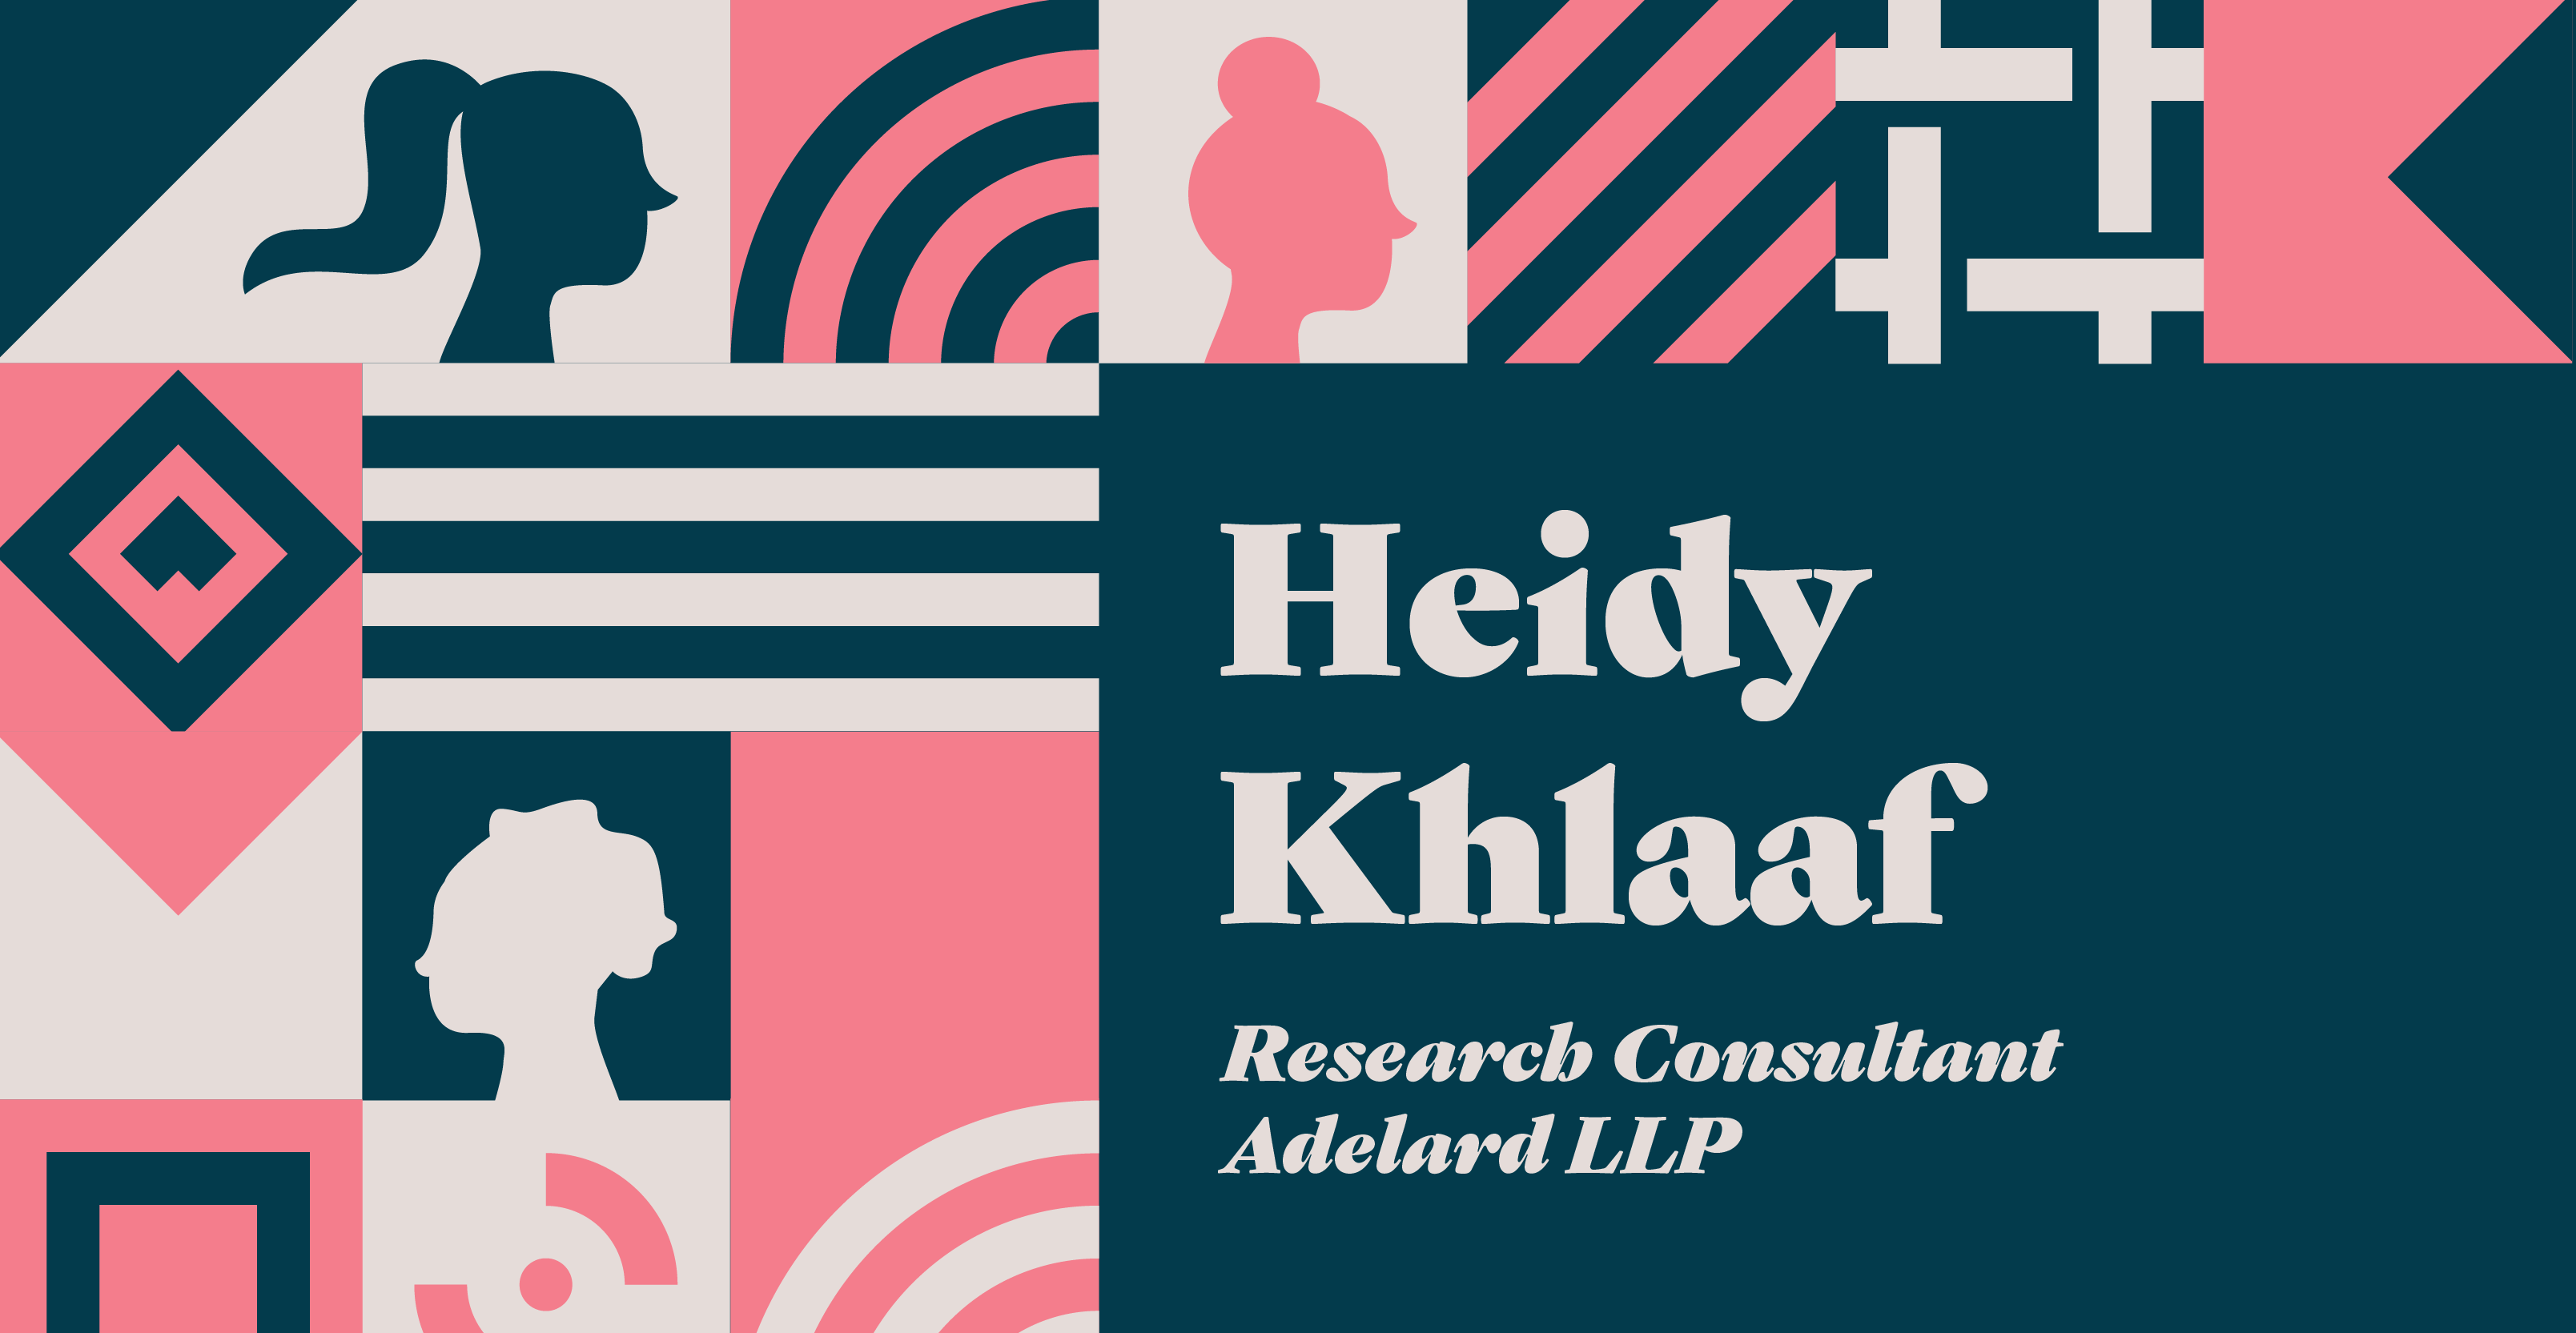 Heidy Khlaaf: Research Consultant at Adelard LLP